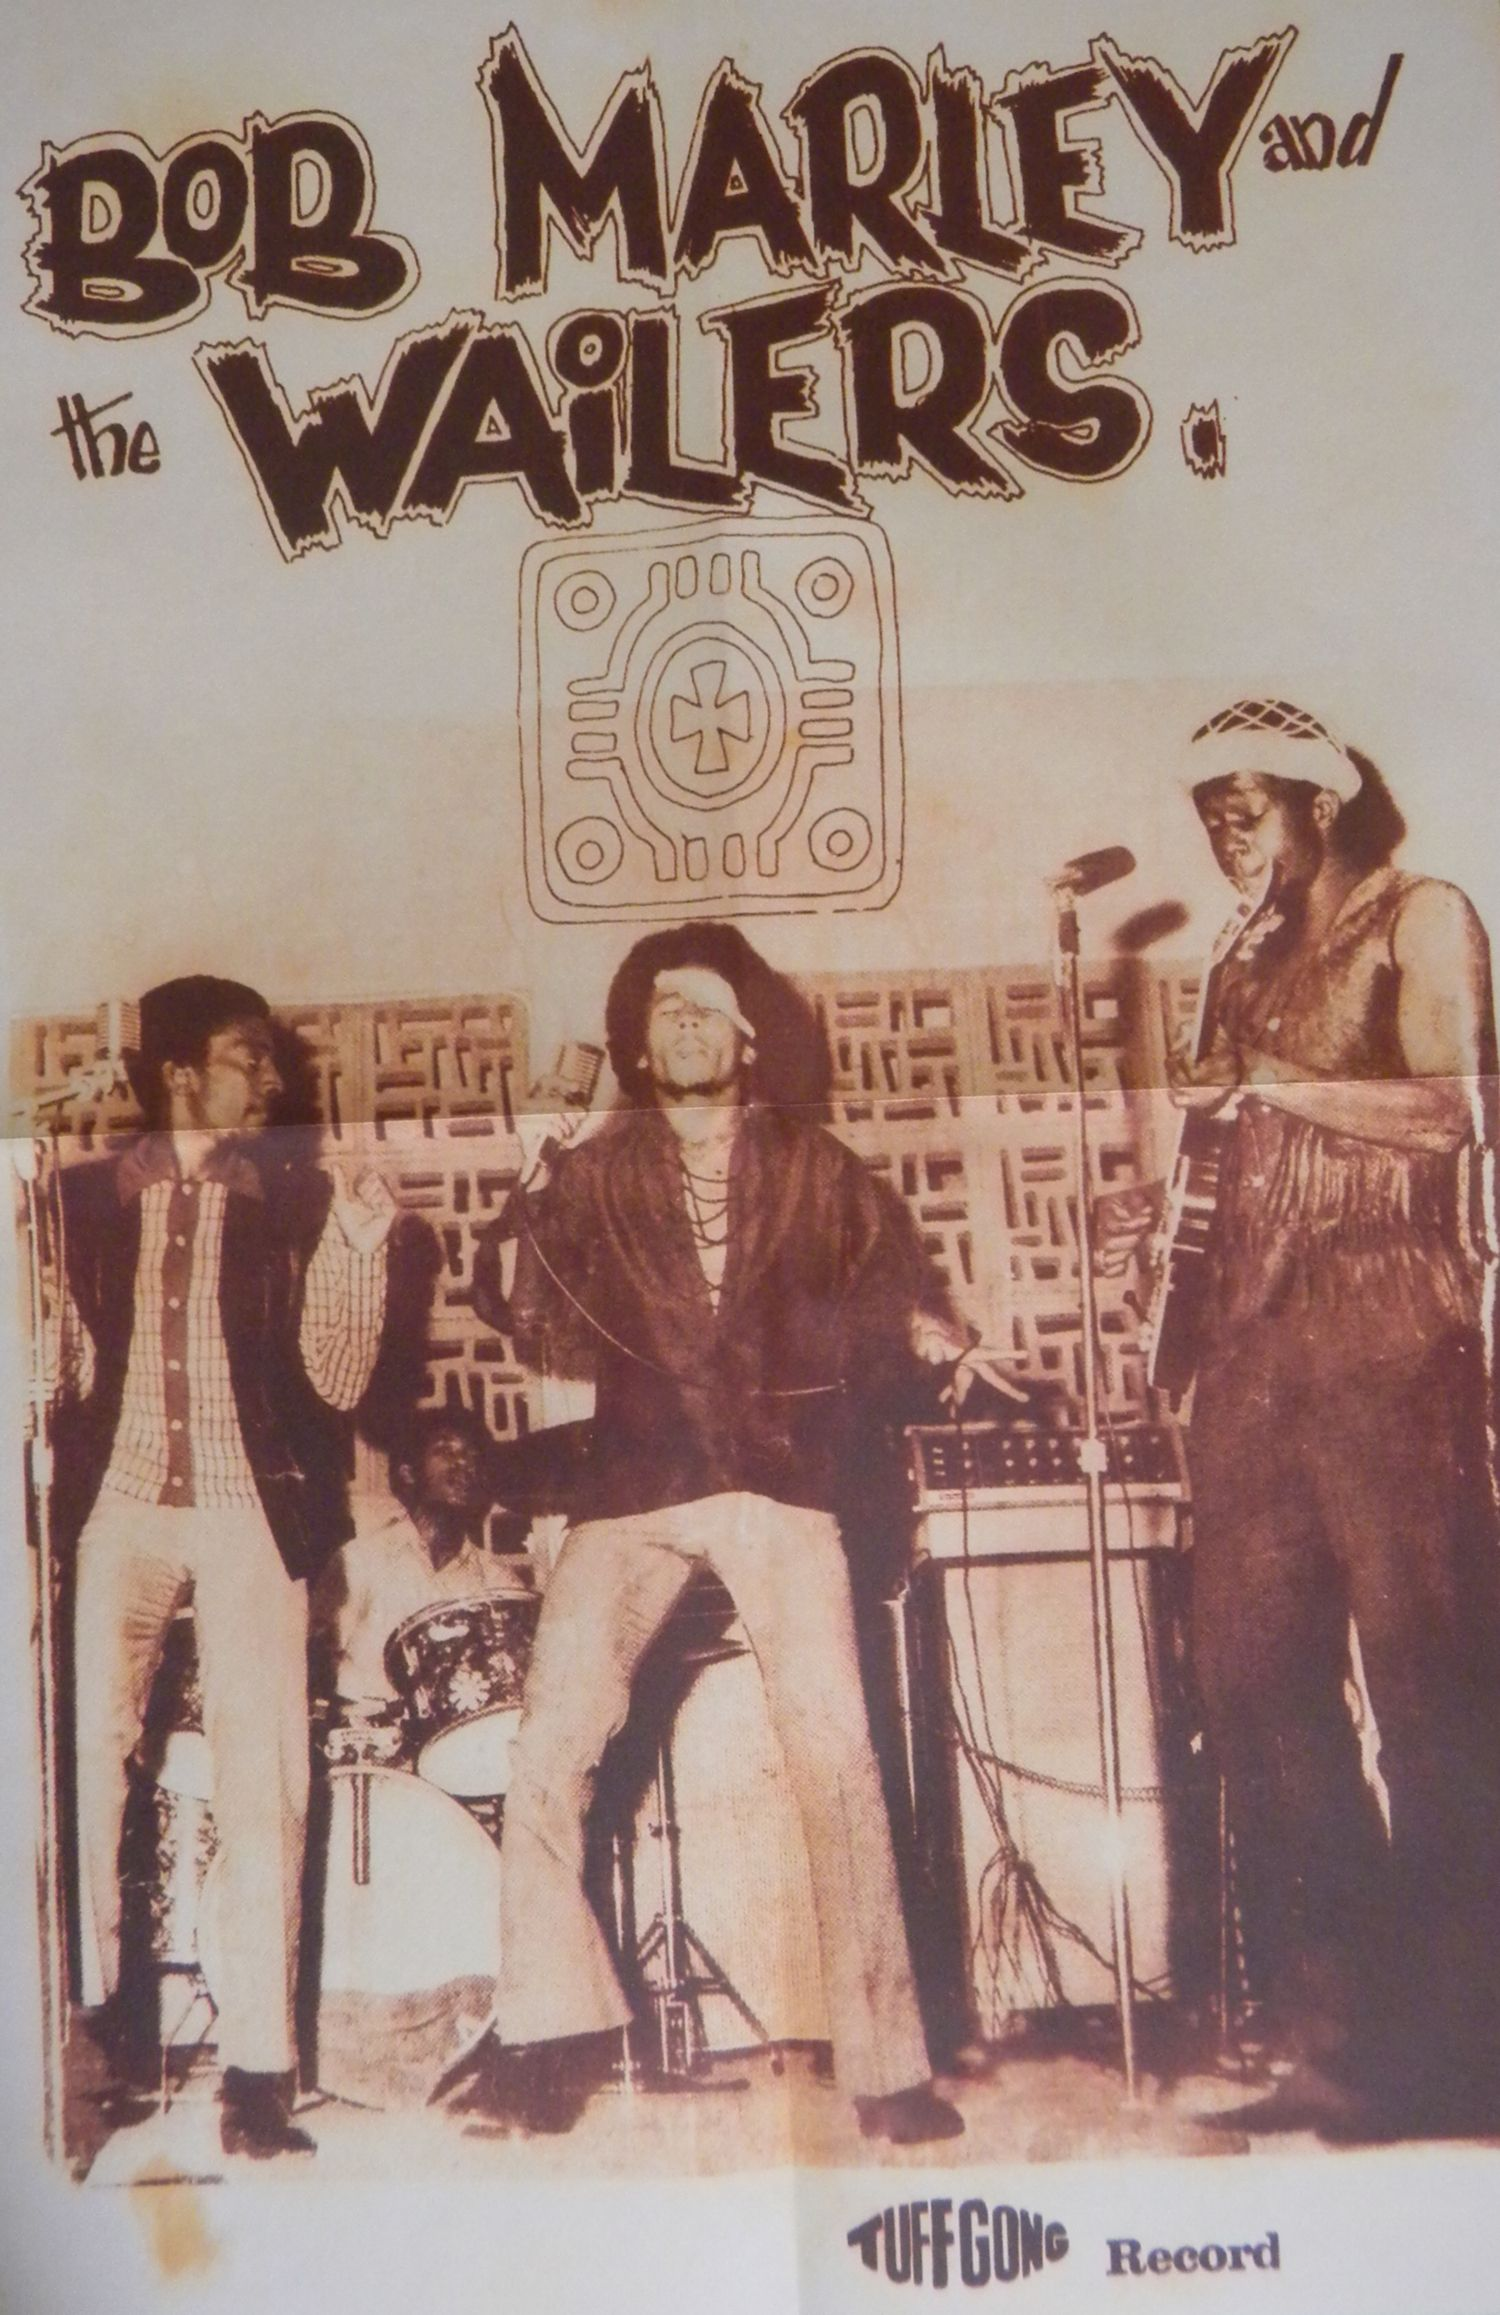 Complete Wailers promo poster.....